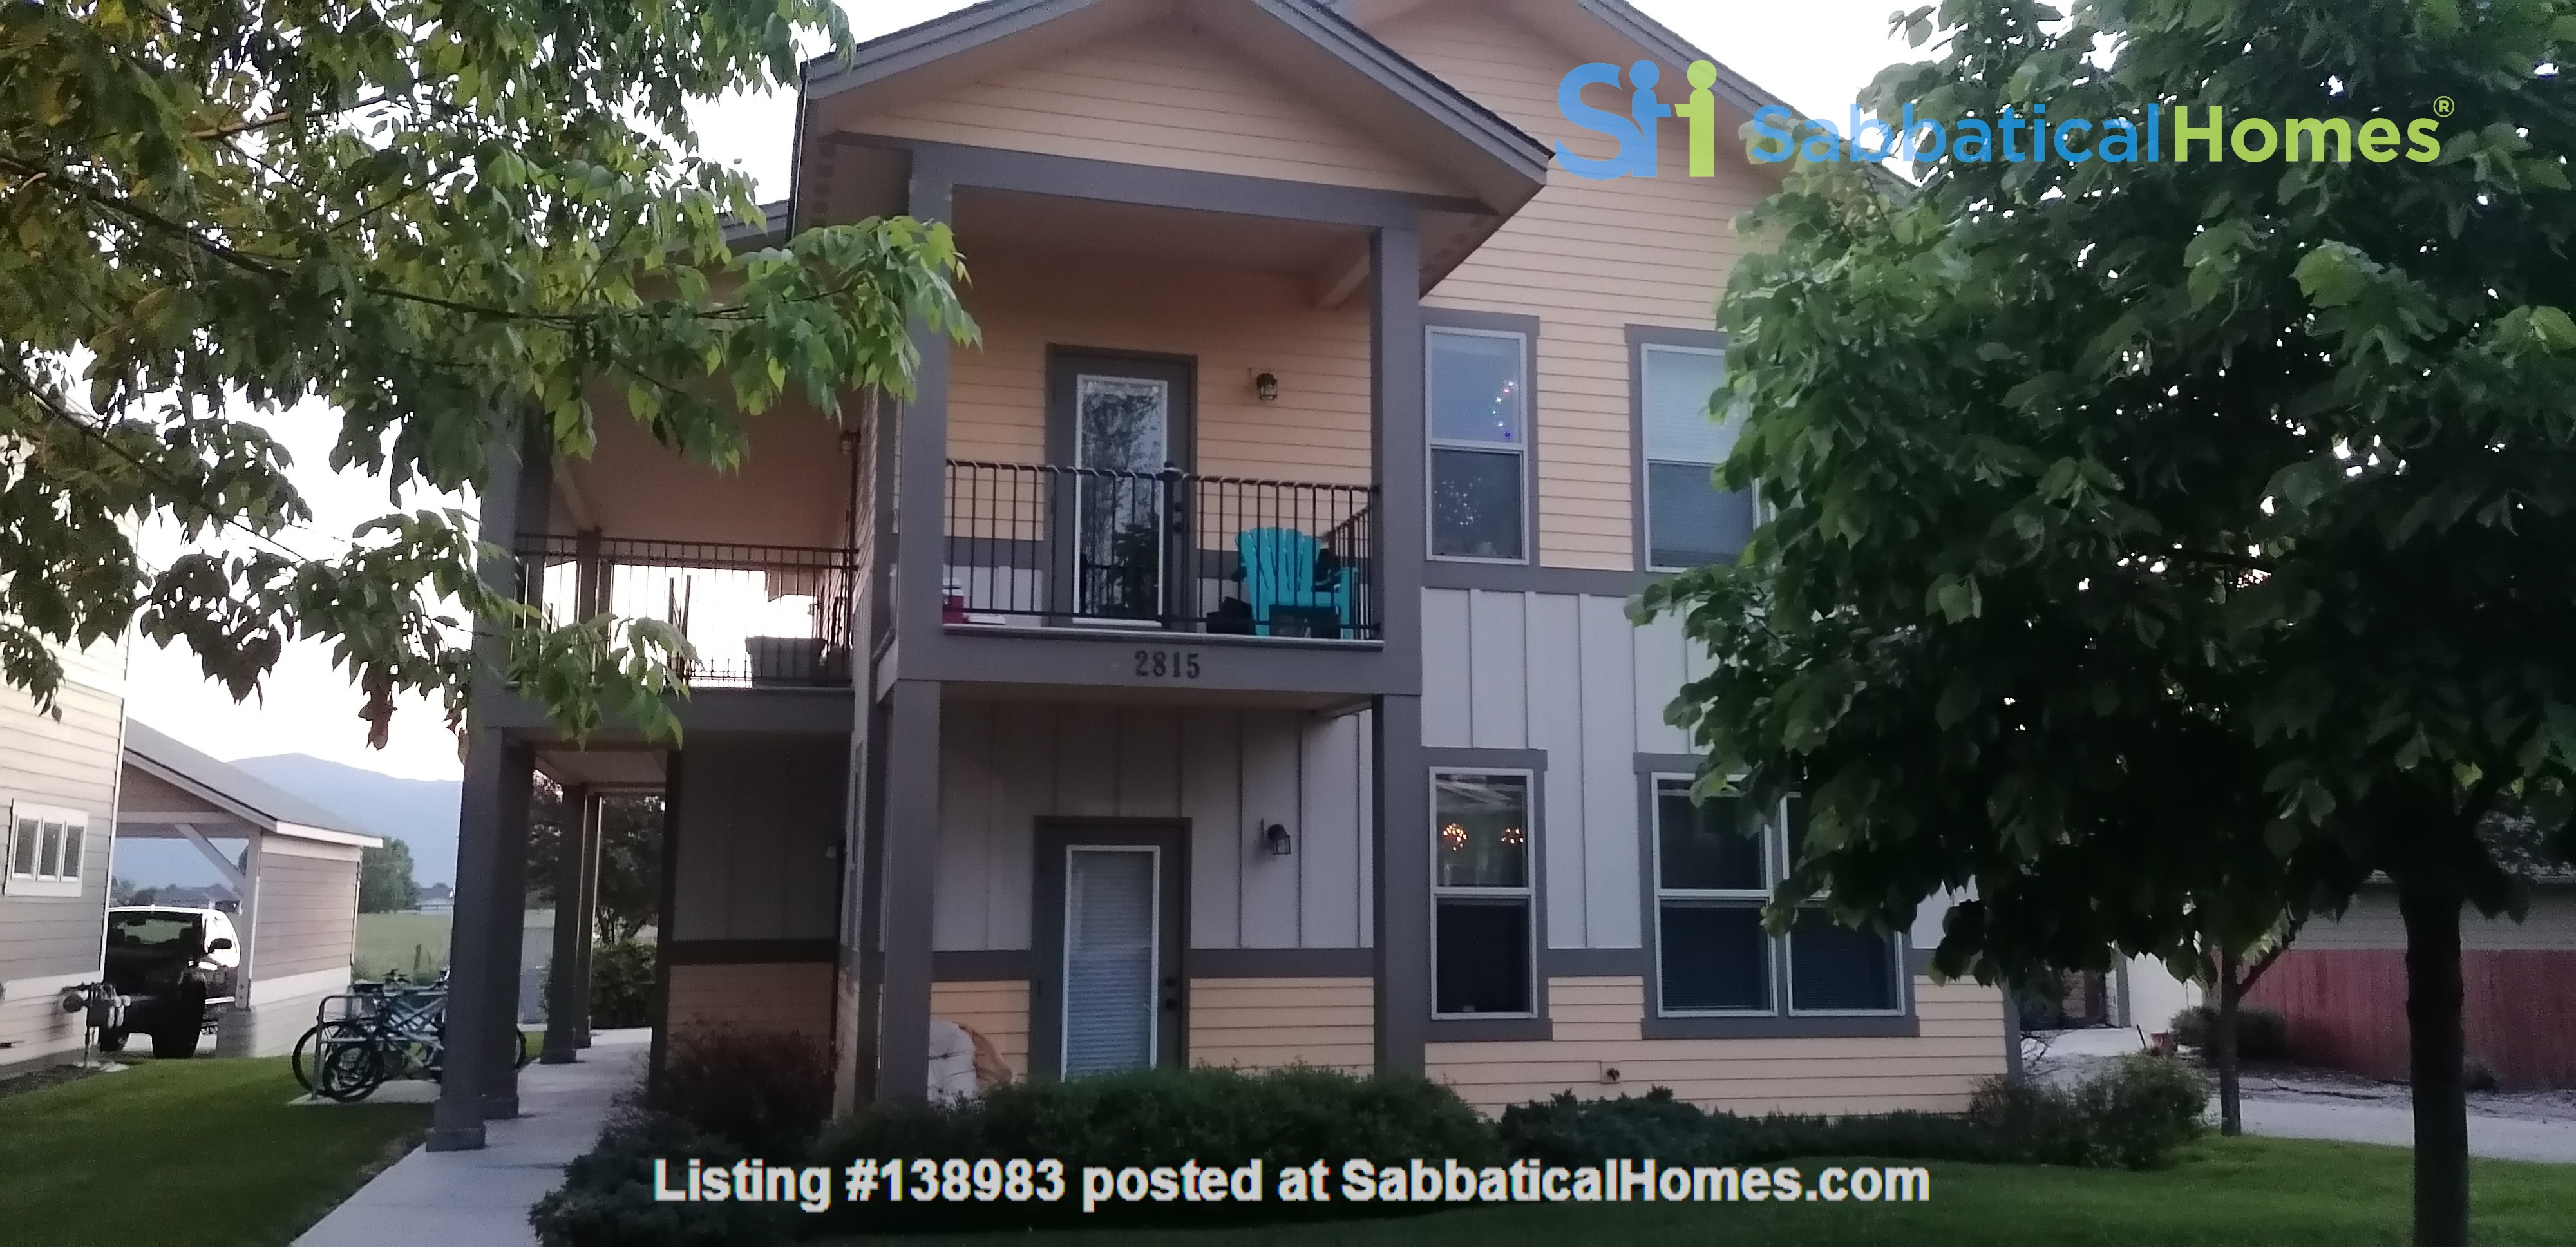 Spacious one bedroom/studio  apartment in Missoula, MT Home Rental in Missoula, Montana, United States 2